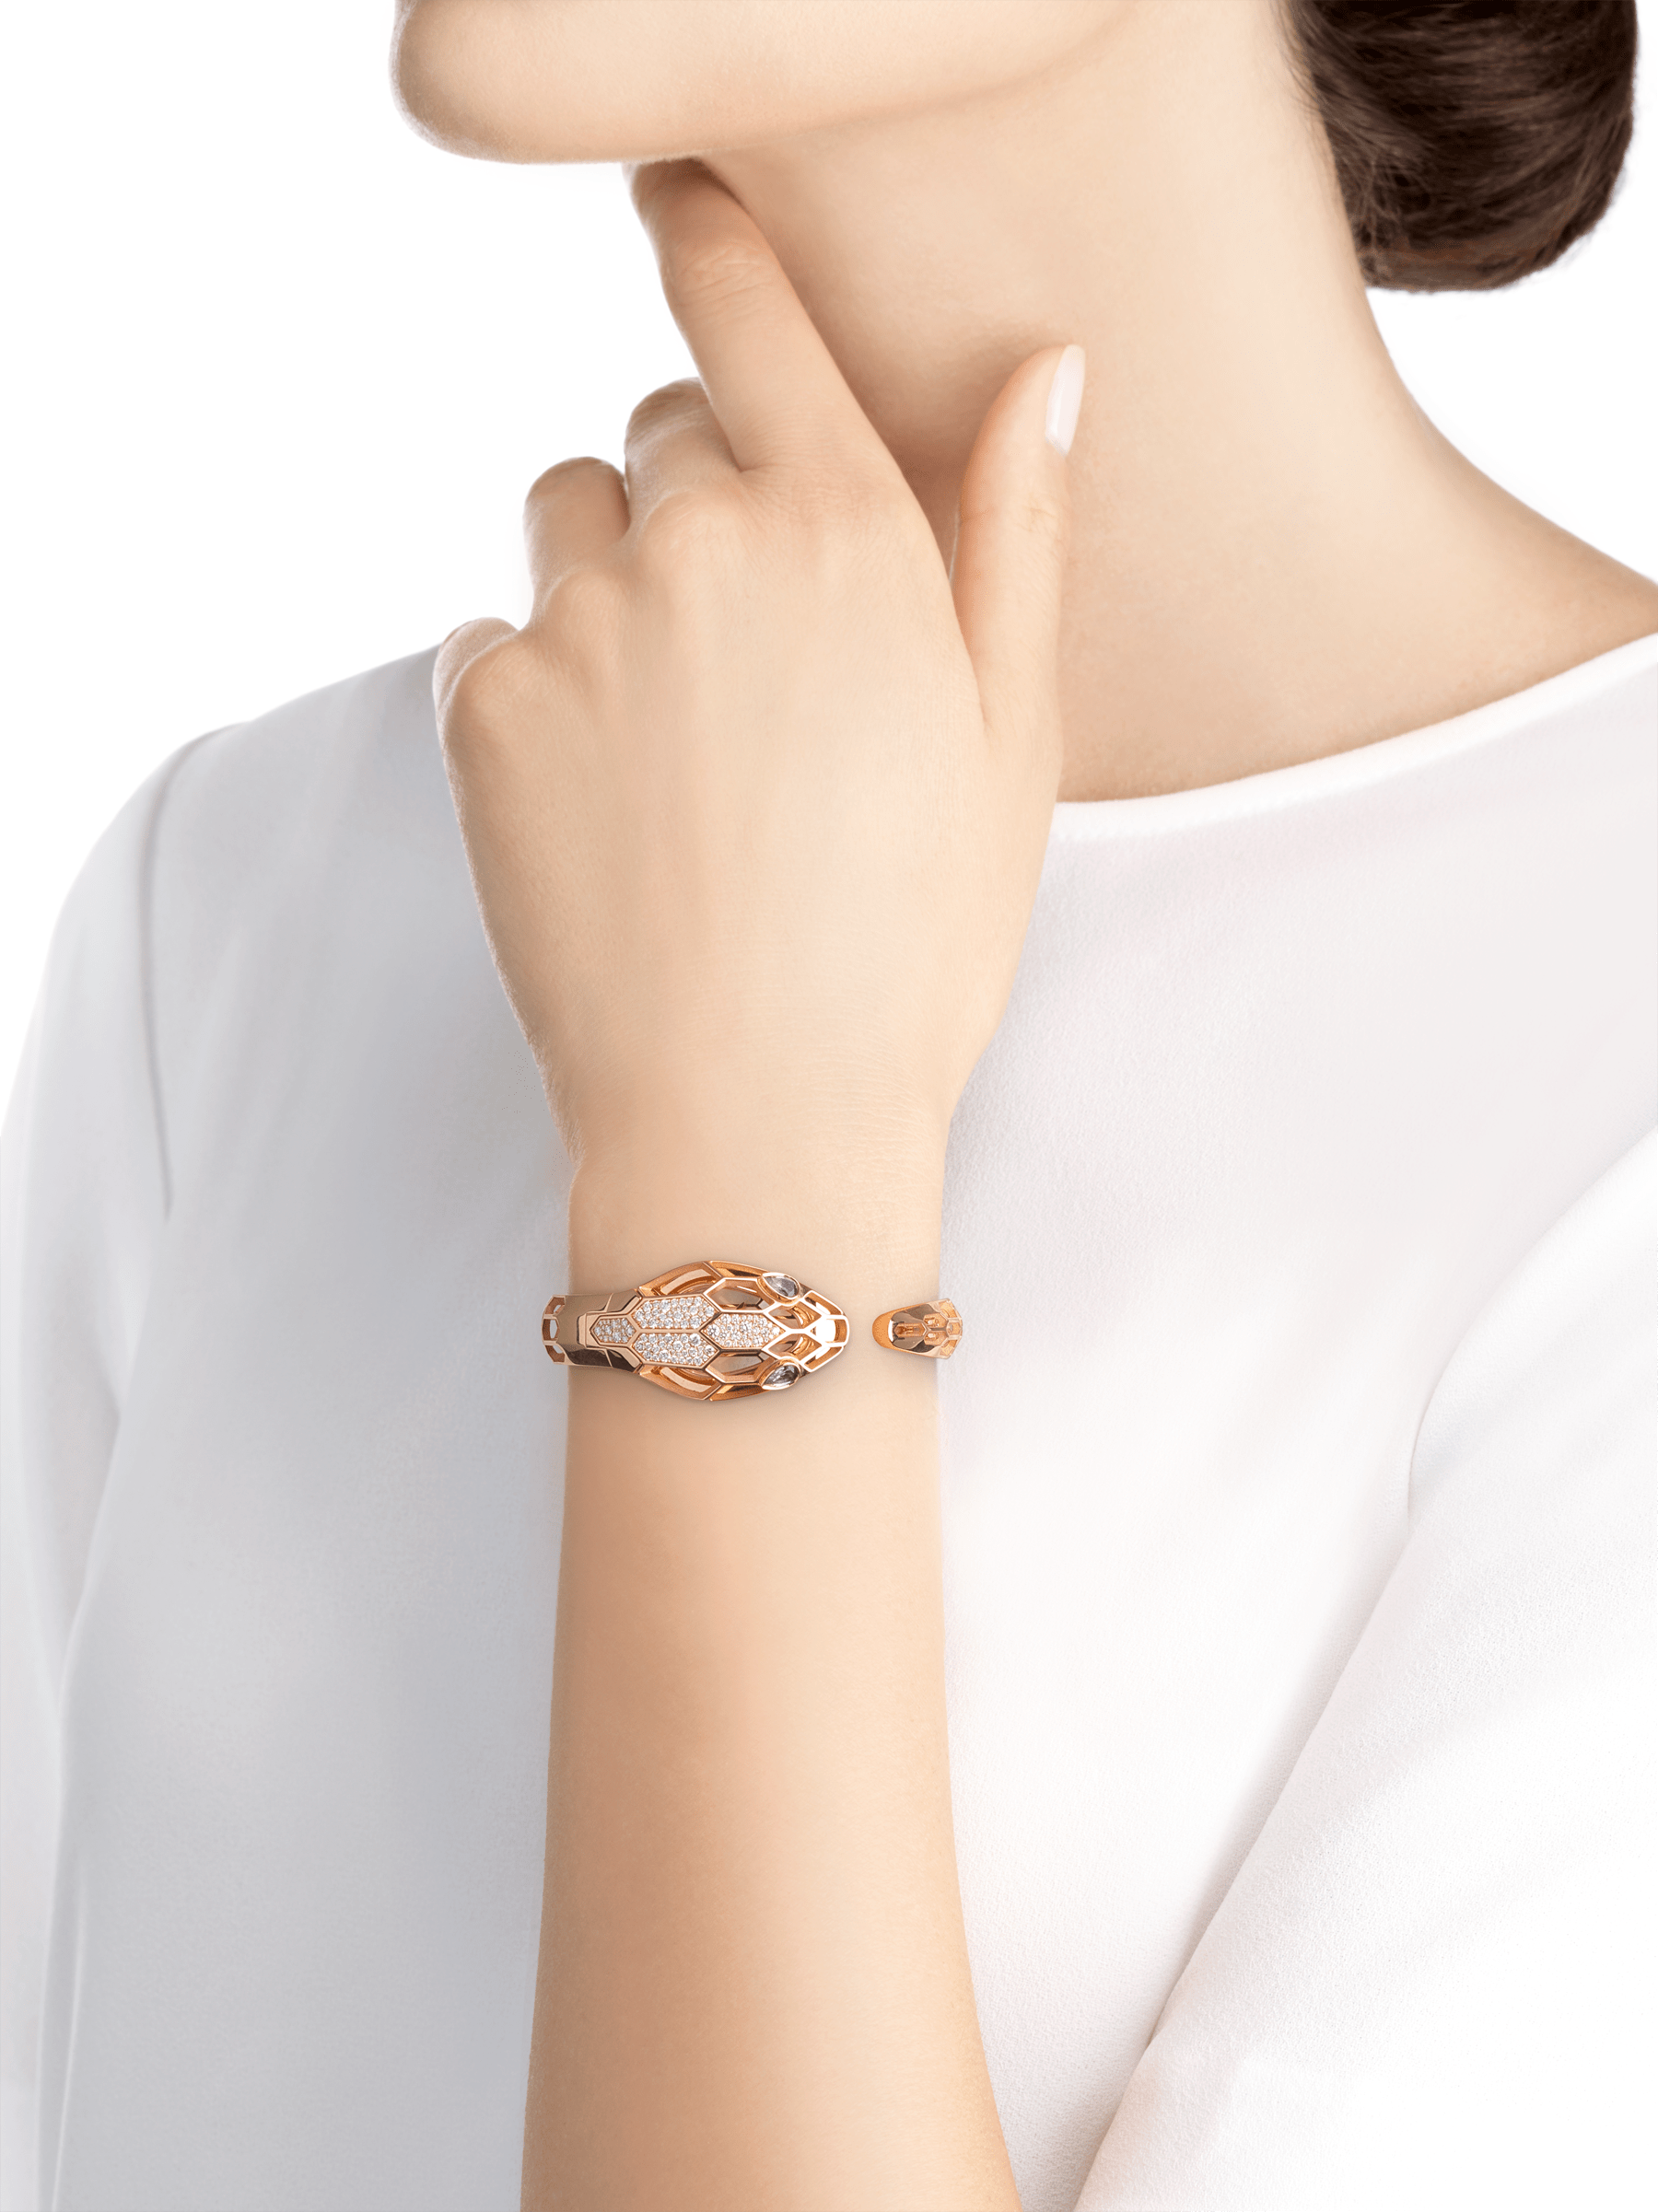 Serpenti Misteriosi Secret Watch with 18 kt rose gold skeletonized case set with round brilliant-cut diamonds, white mother-of-pearl dial, 18 kt rose gold skeletonized bangle bracelet and pear-shaped amethyst eyes. SrpntMister-SecretWtc-rose-gold image 2